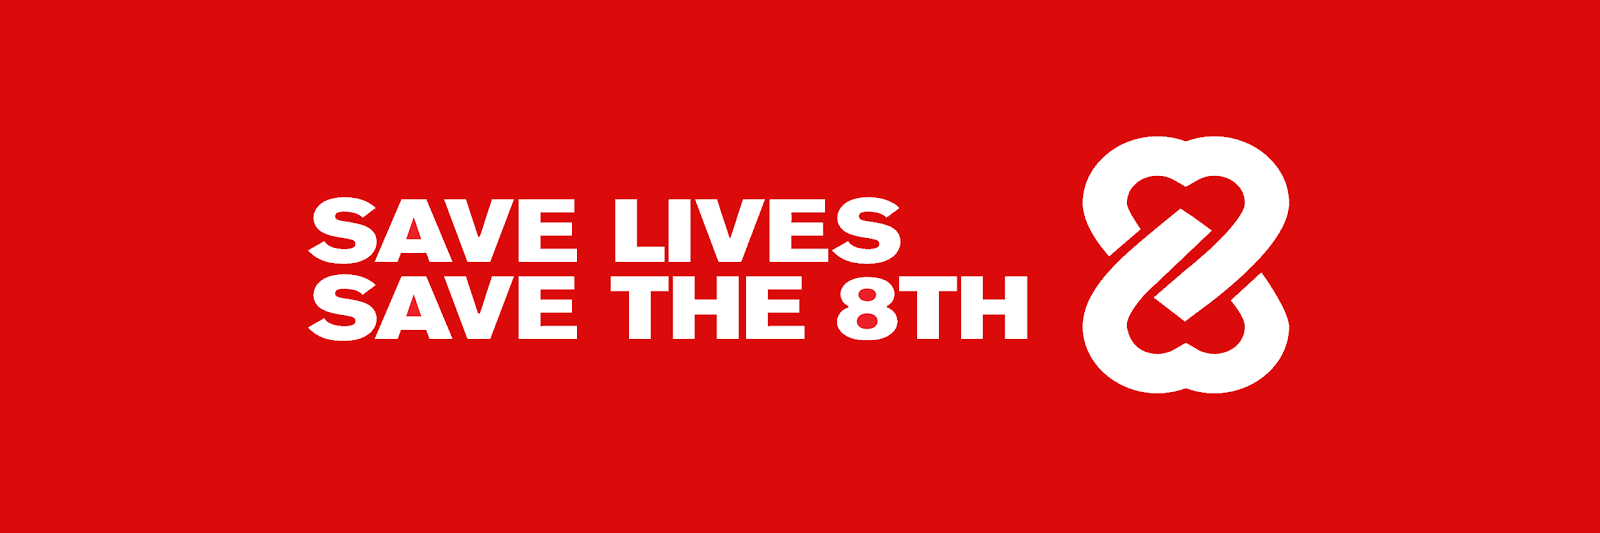 Save Lives - Save the 8th